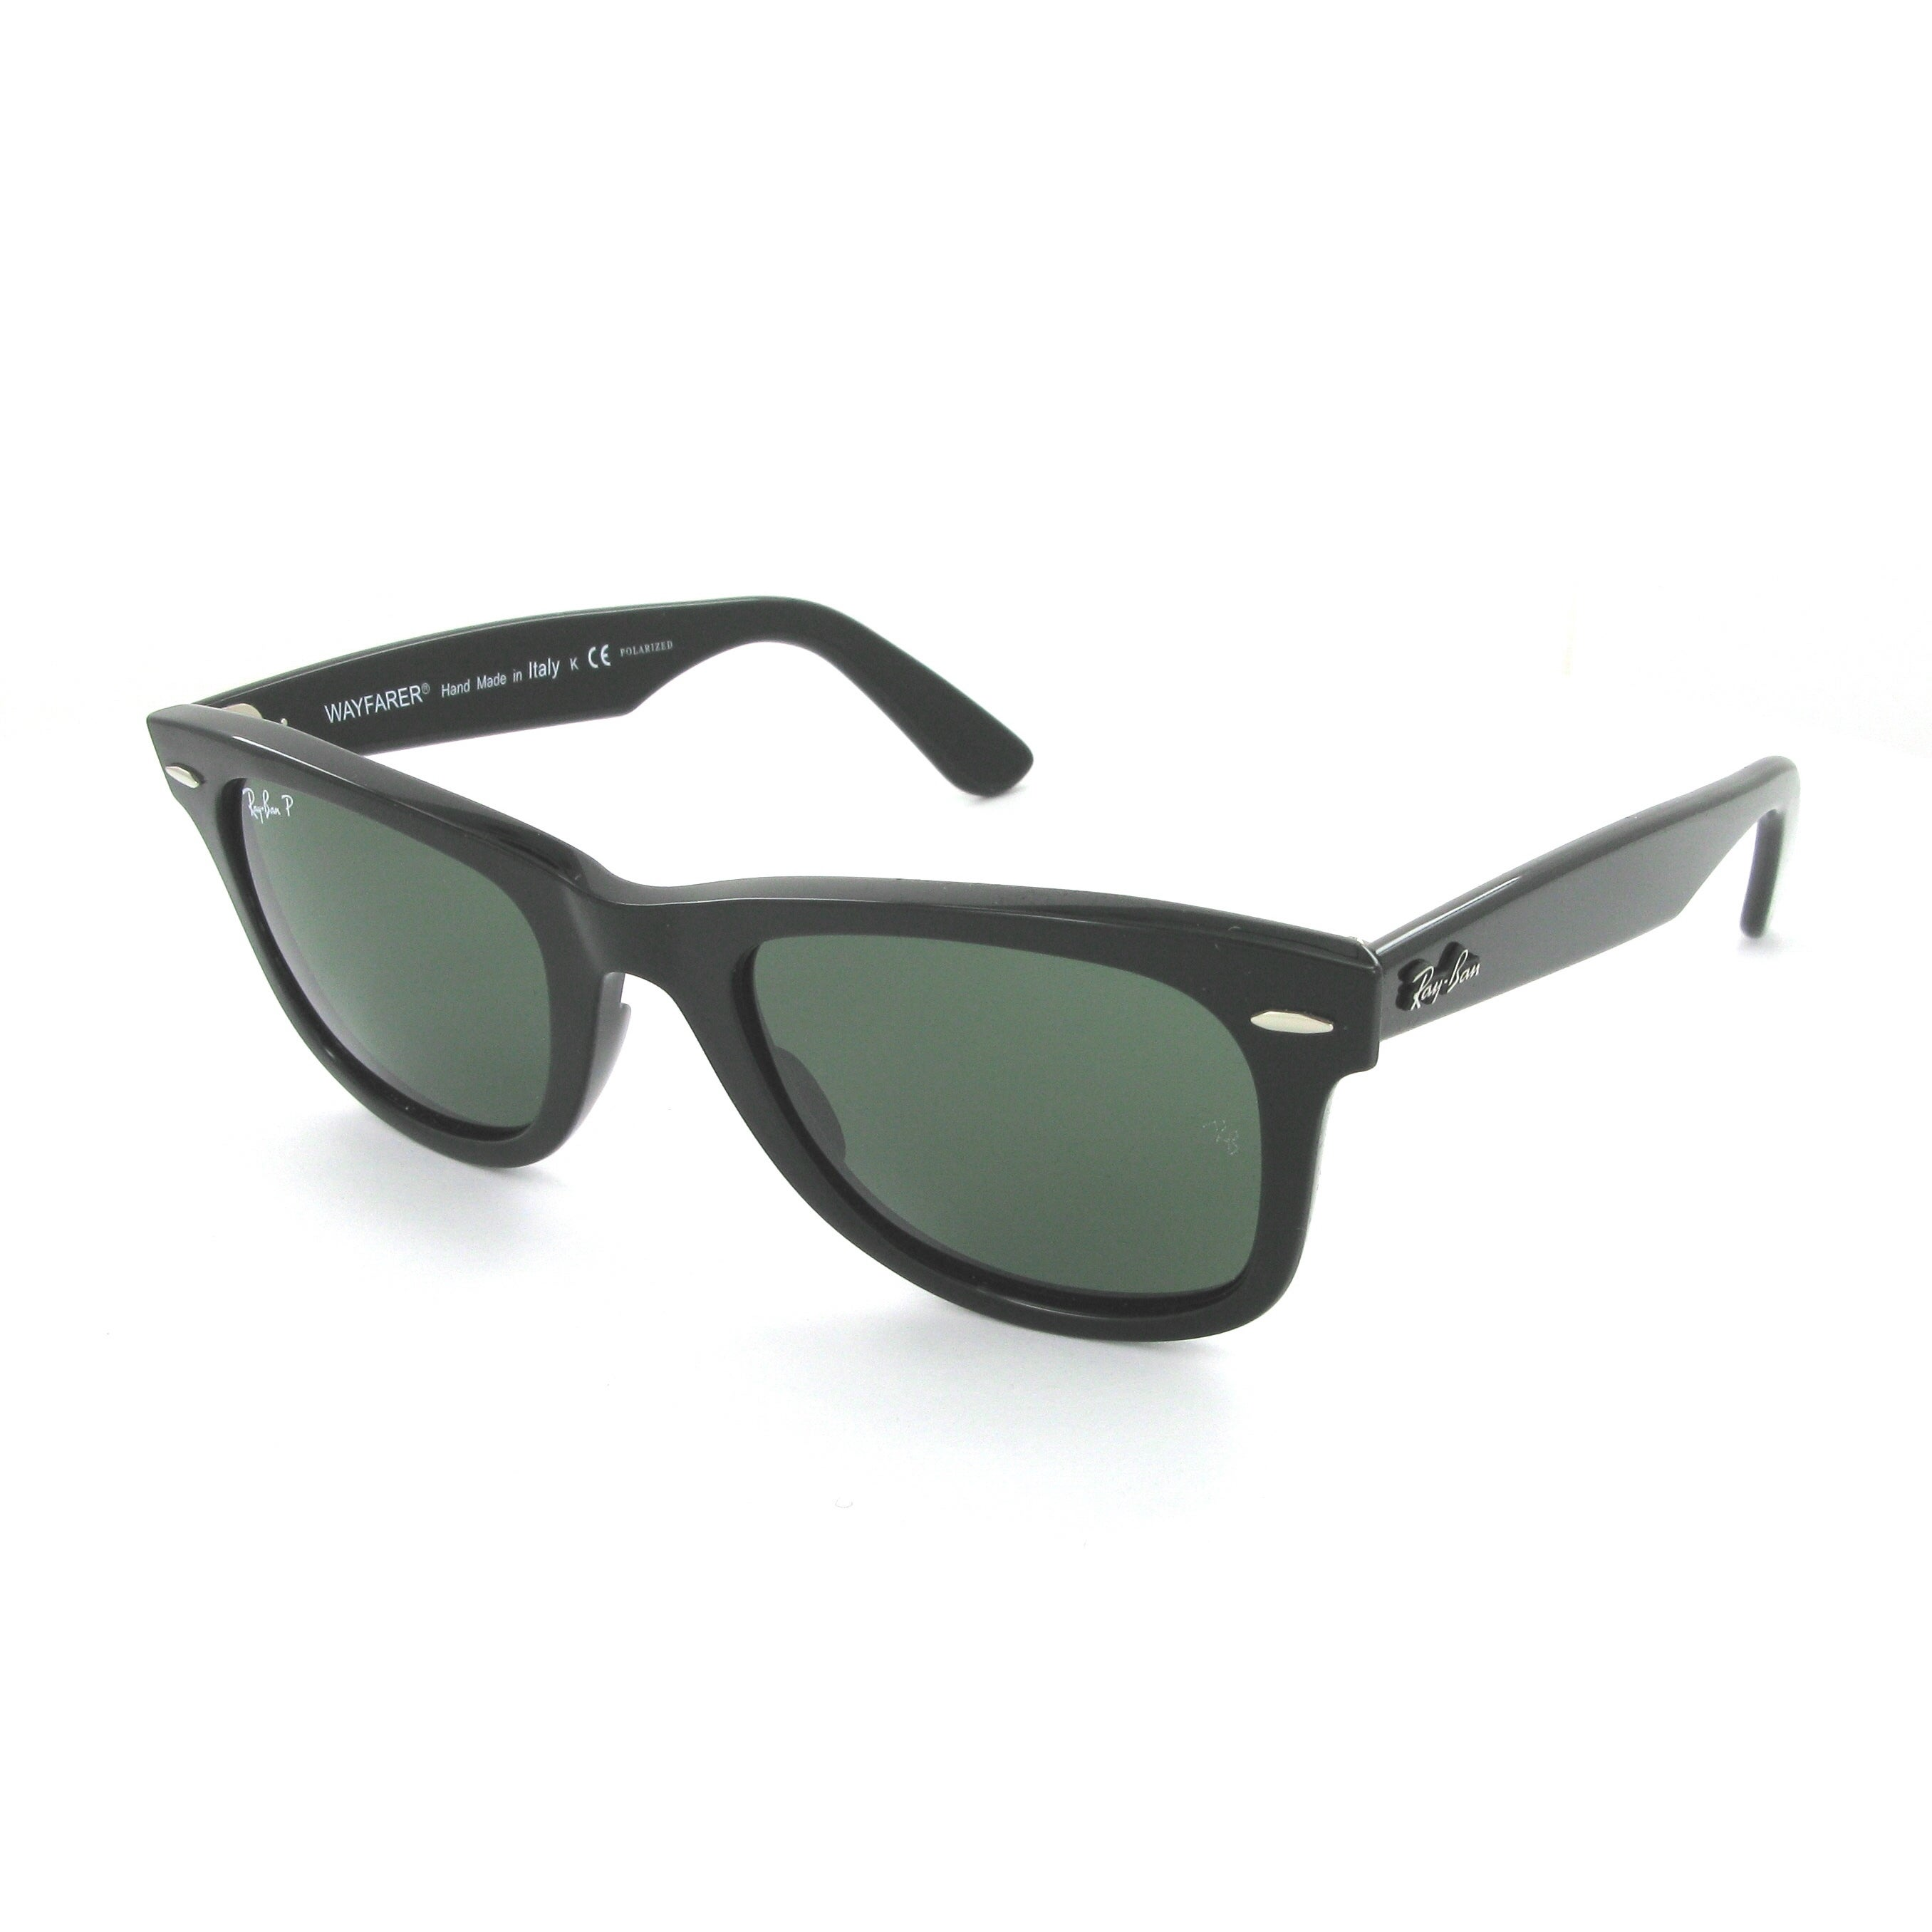 a0831c11c3 Shop Ray-Ban  RB 2140  Polarized Wayfarer Sunglasses - Black - Free  Shipping Today - Overstock.com - 9428270